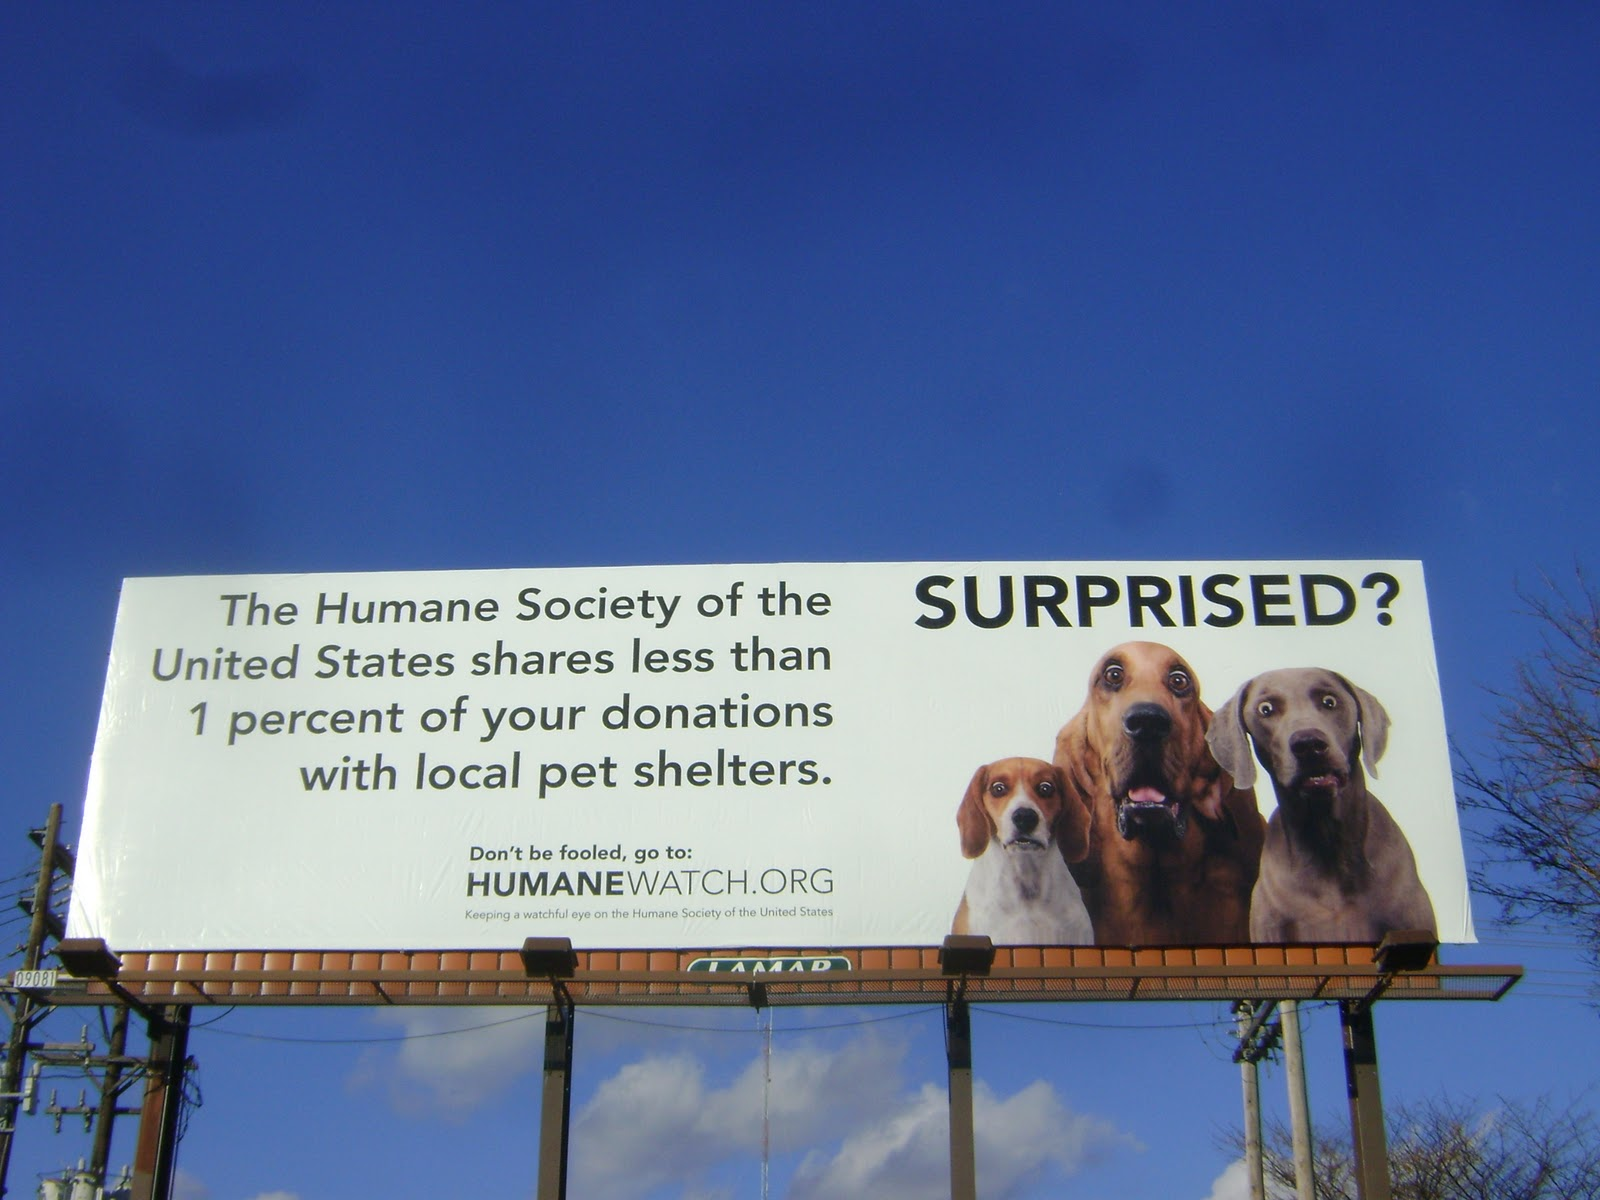 Governor stands firm in opposition to HSUS